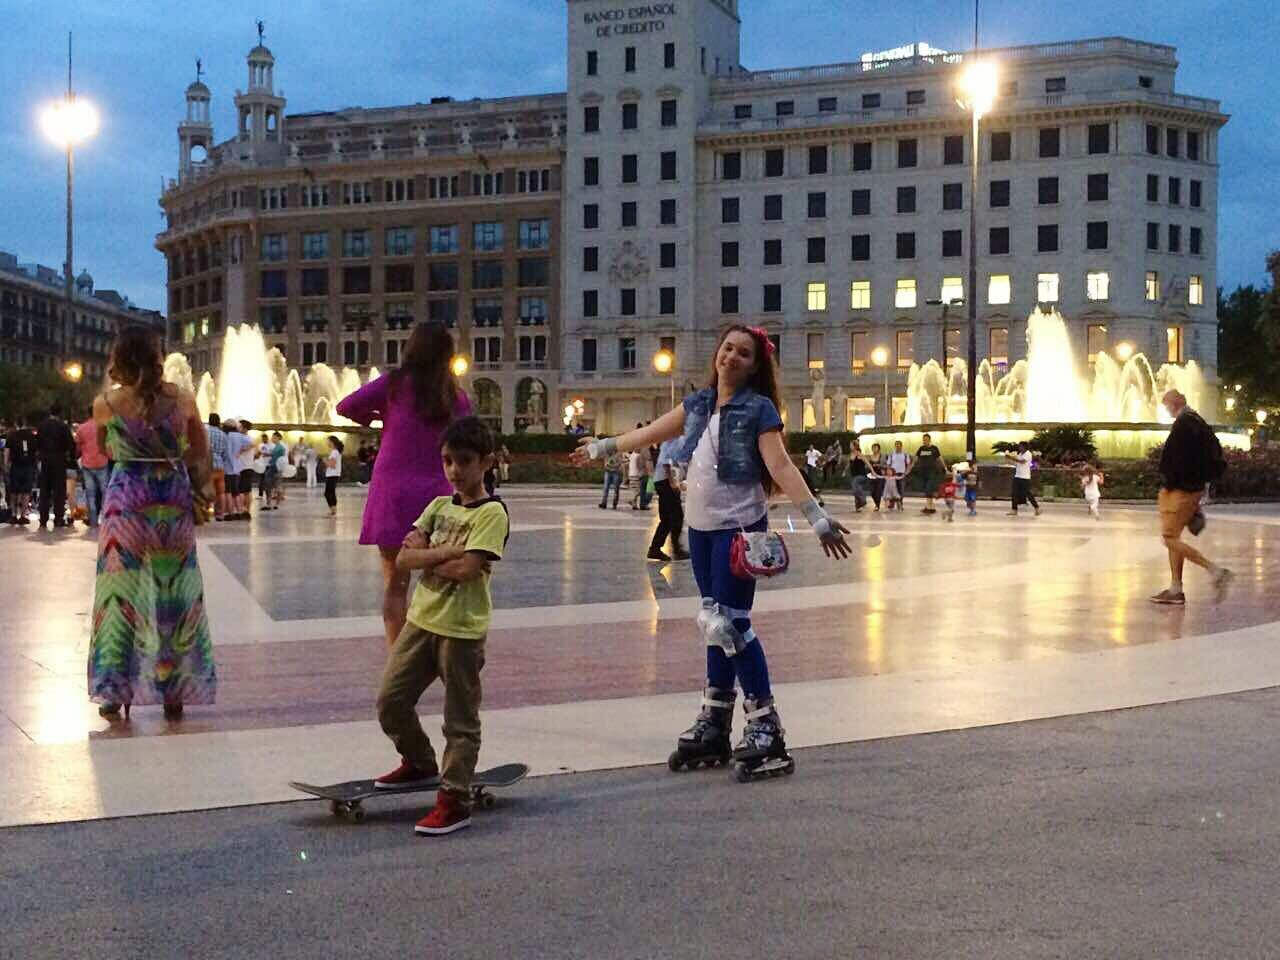 architecture, building exterior, built structure, real people, leisure activity, walking, outdoors, large group of people, illuminated, men, lifestyles, full length, women, city, day, ice-skating, ice rink, sky, people, adult